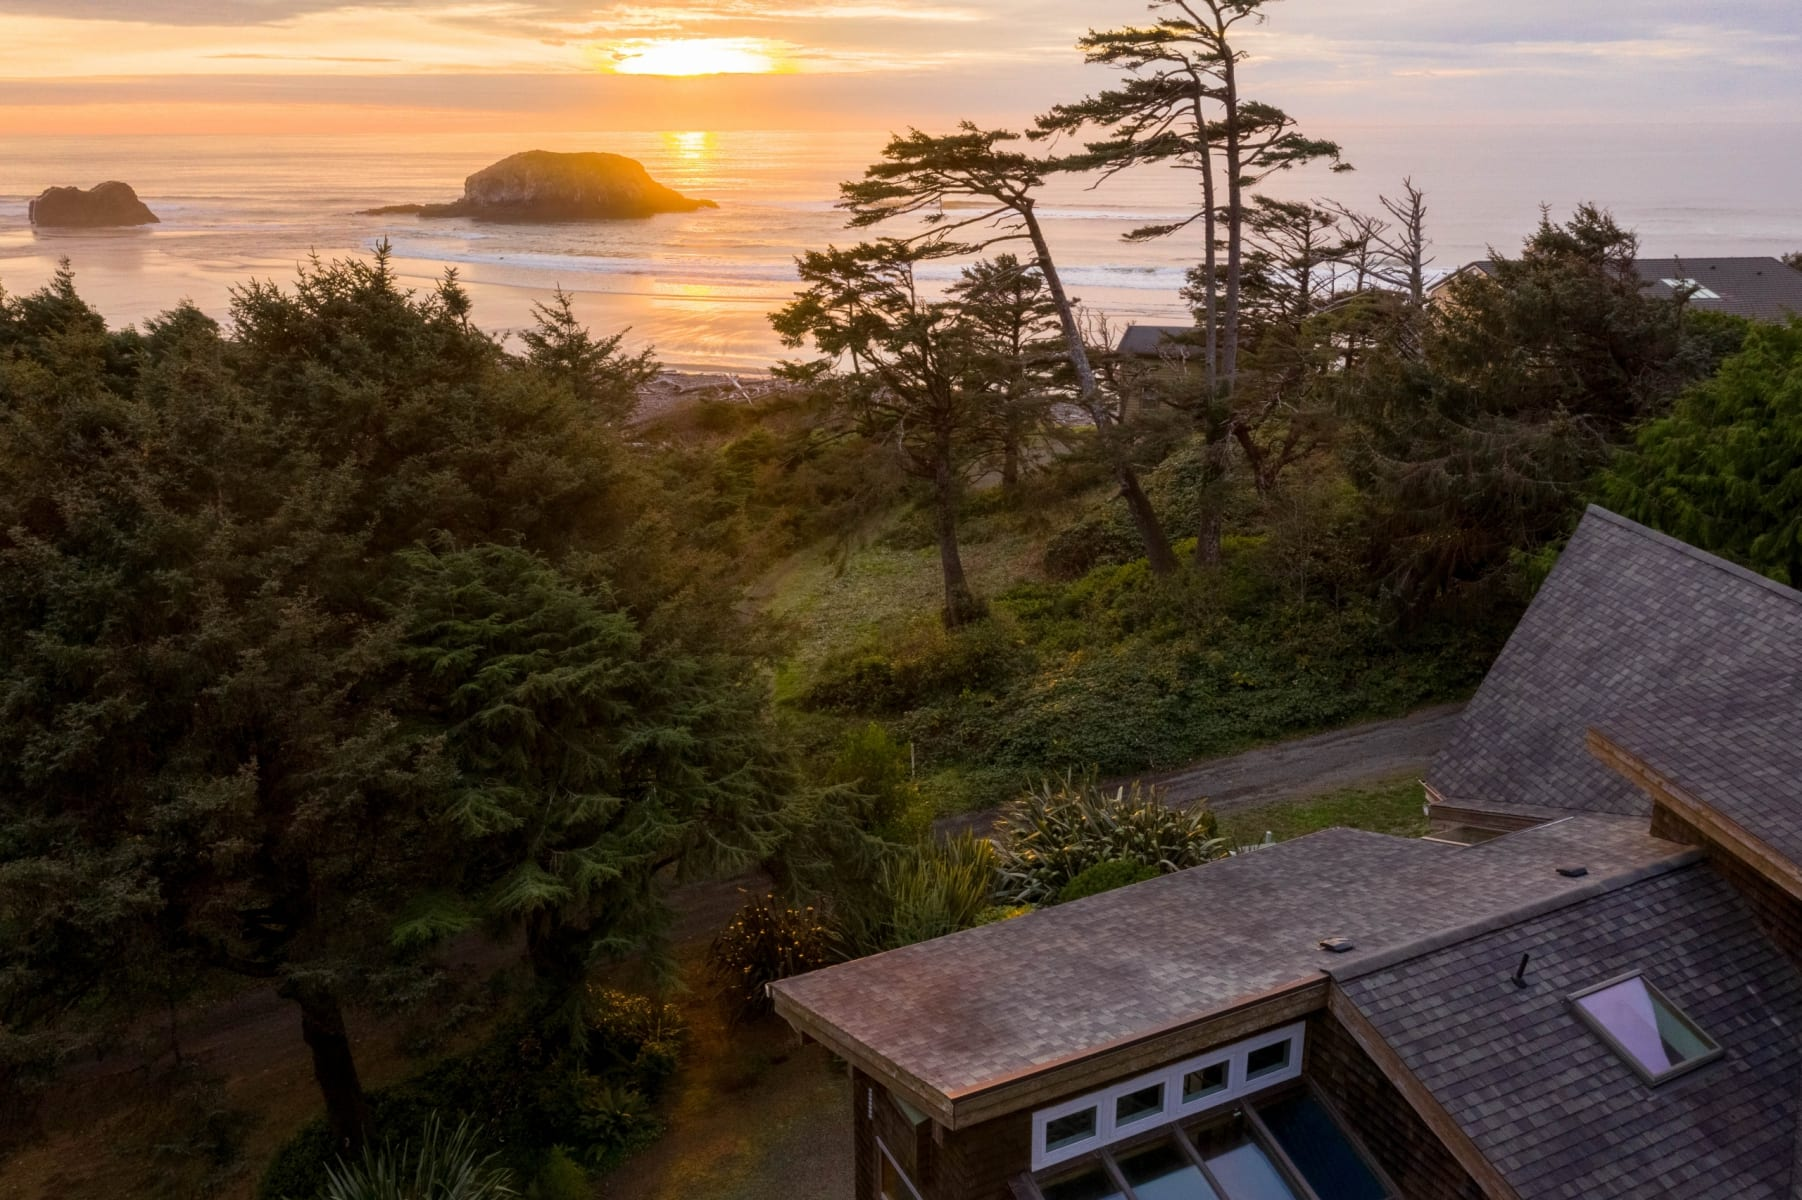 Overhead view of home and Oregon coast.